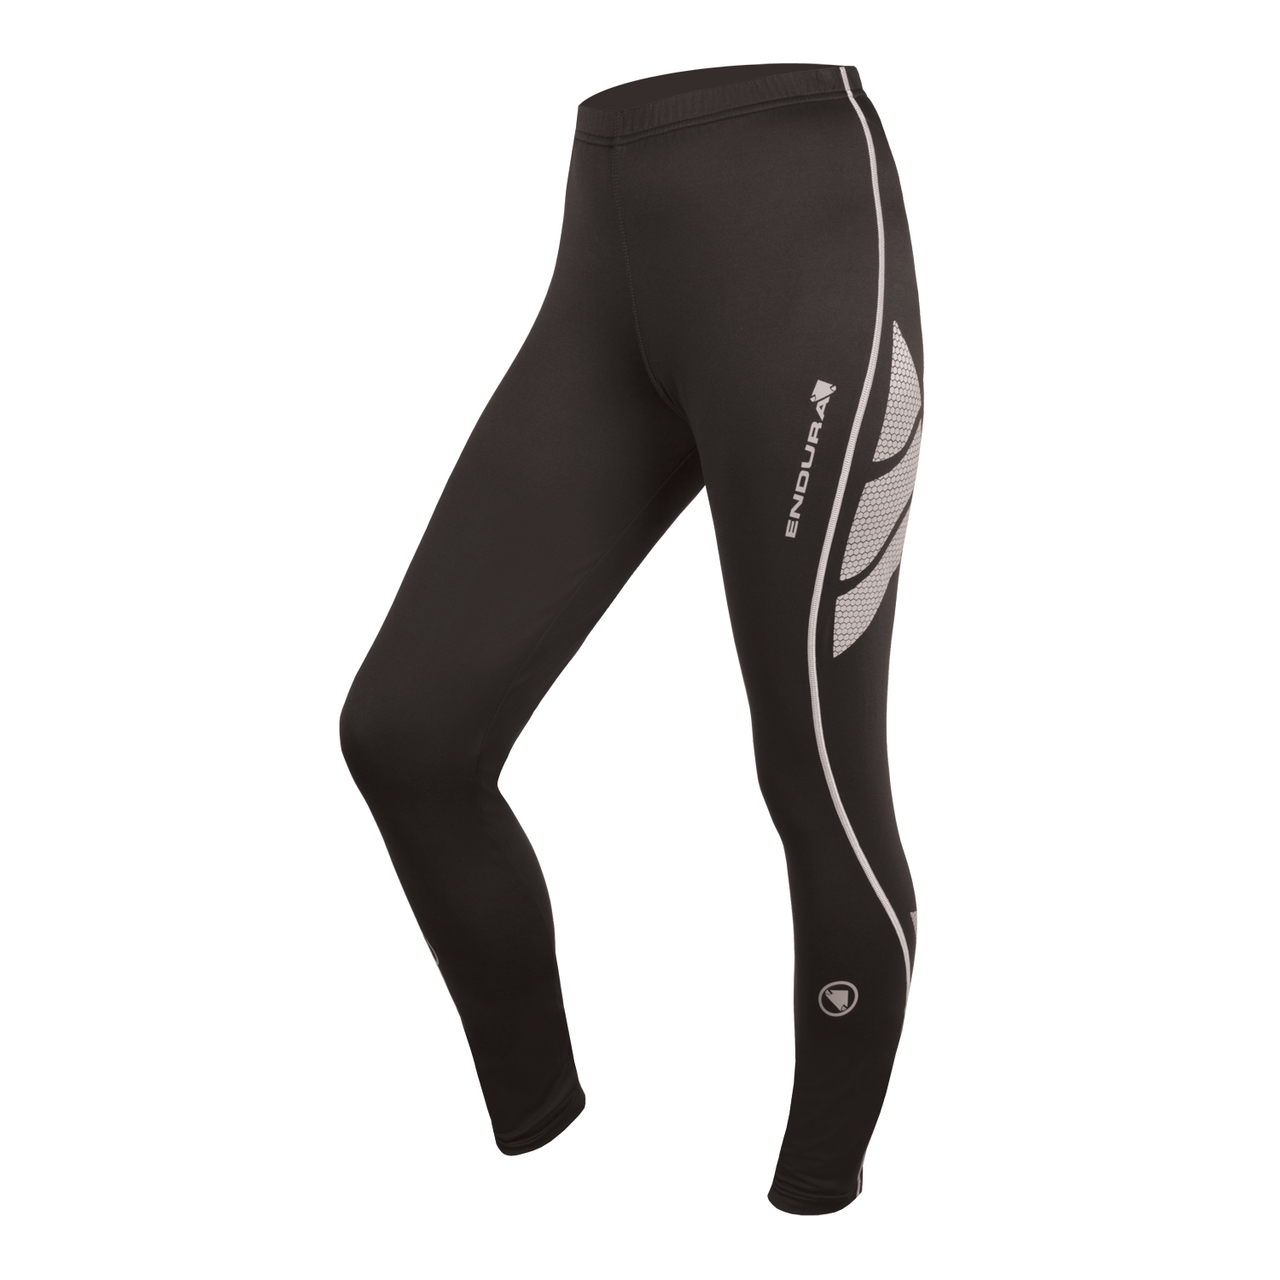 I am looking for padded women's windbreaker cycling pants!  Not really heavy like winter, but more chilly spring!